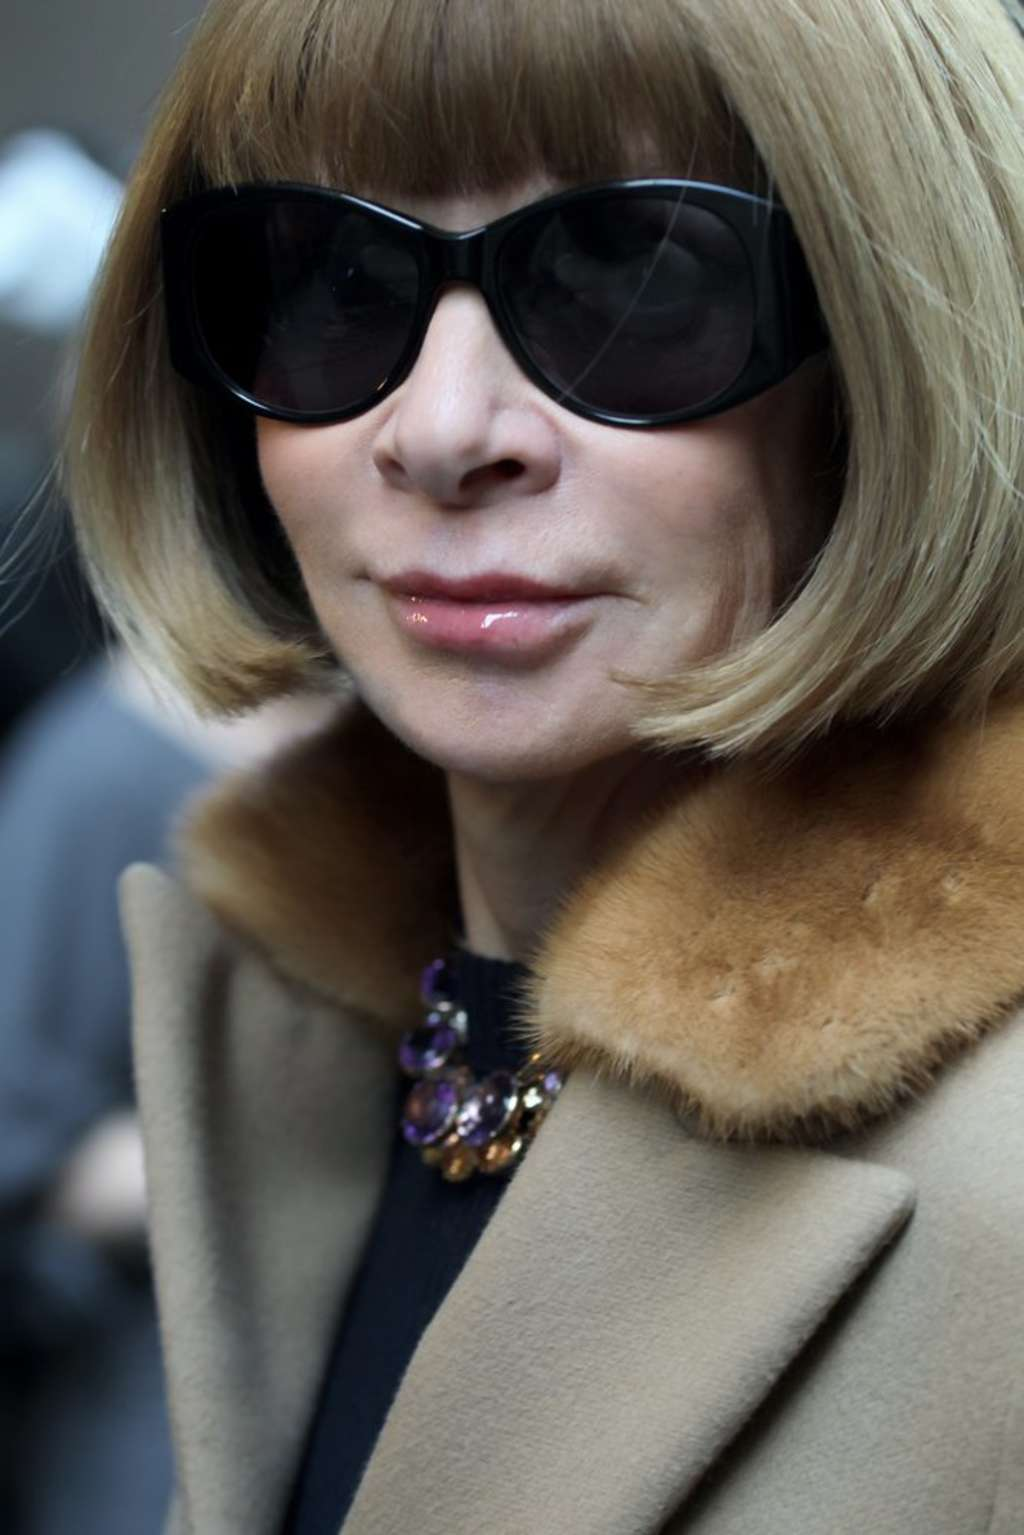 Anna Wintour Answers 73 Probing Questions (and Reveals Herself to be Surprisingly Charming)